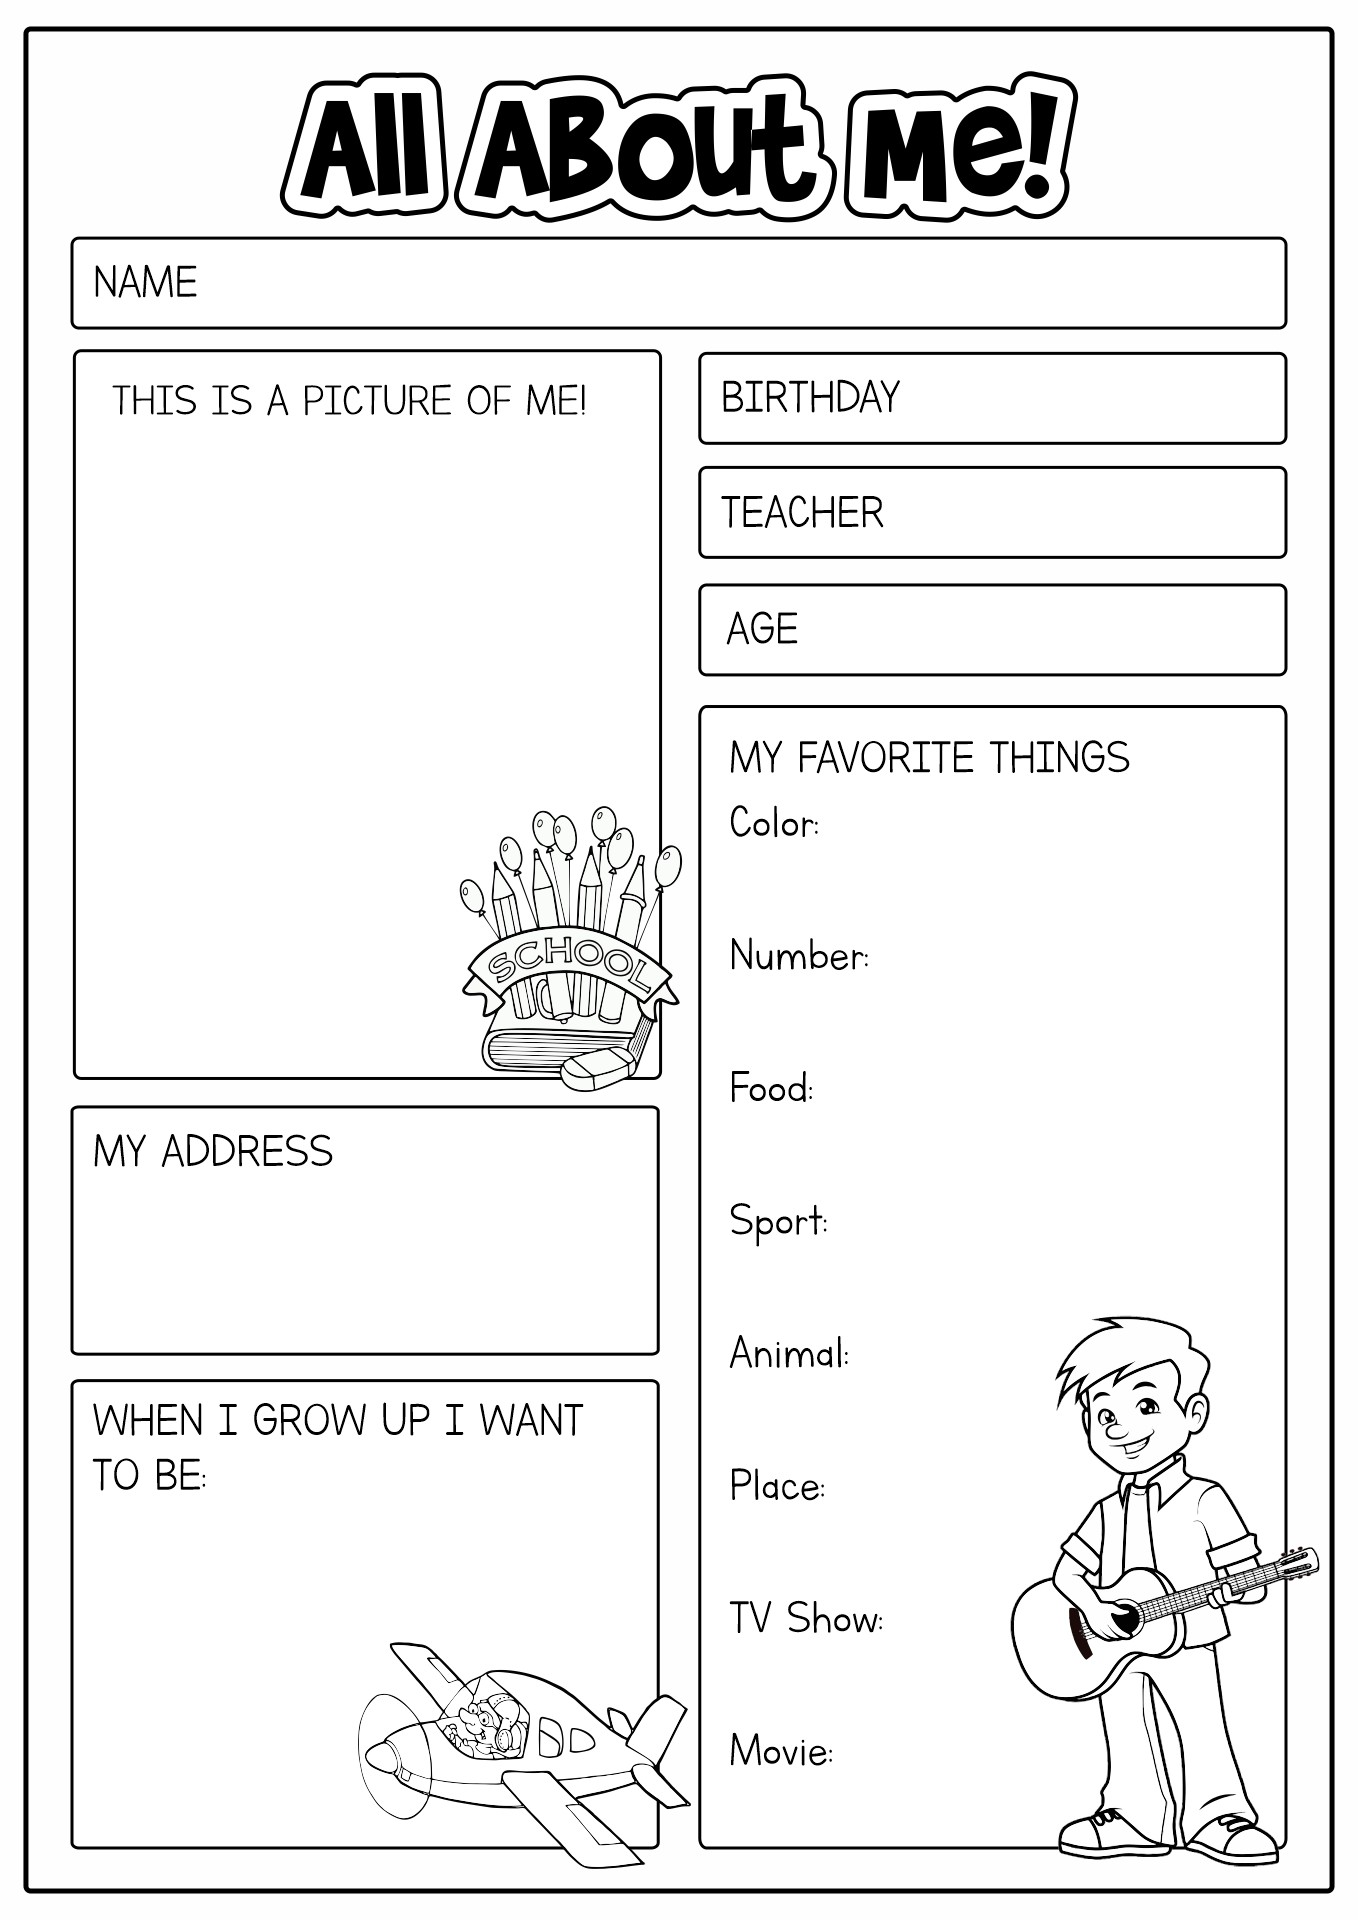 14 Best Images Of All About Me Printable Worksheet For